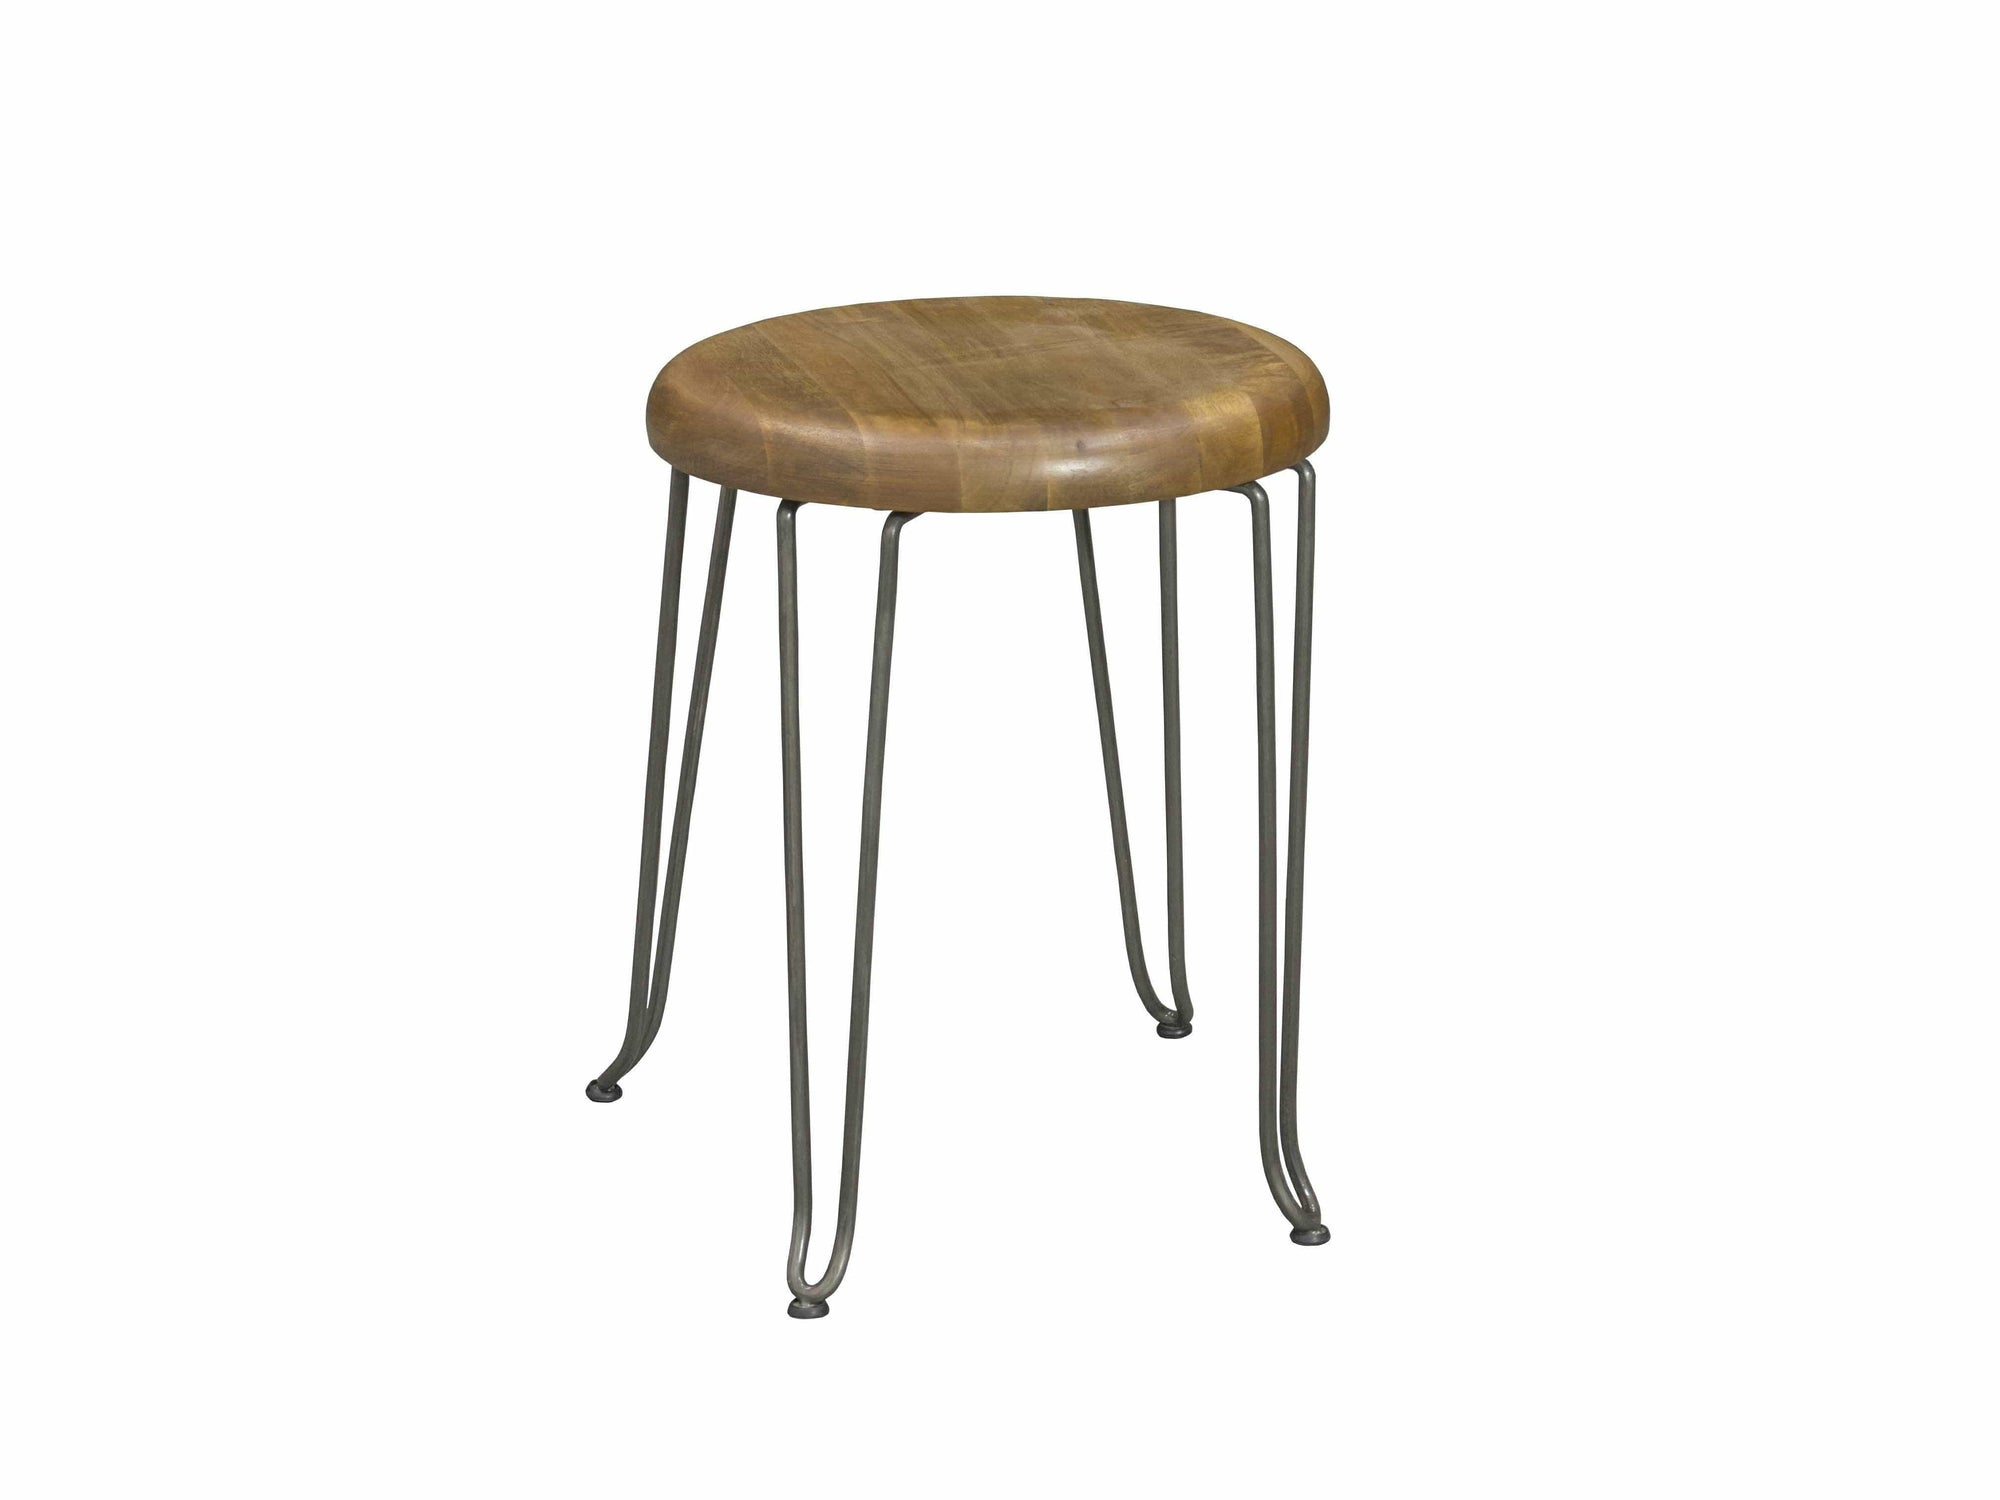 Small stool with steel hairpin legs